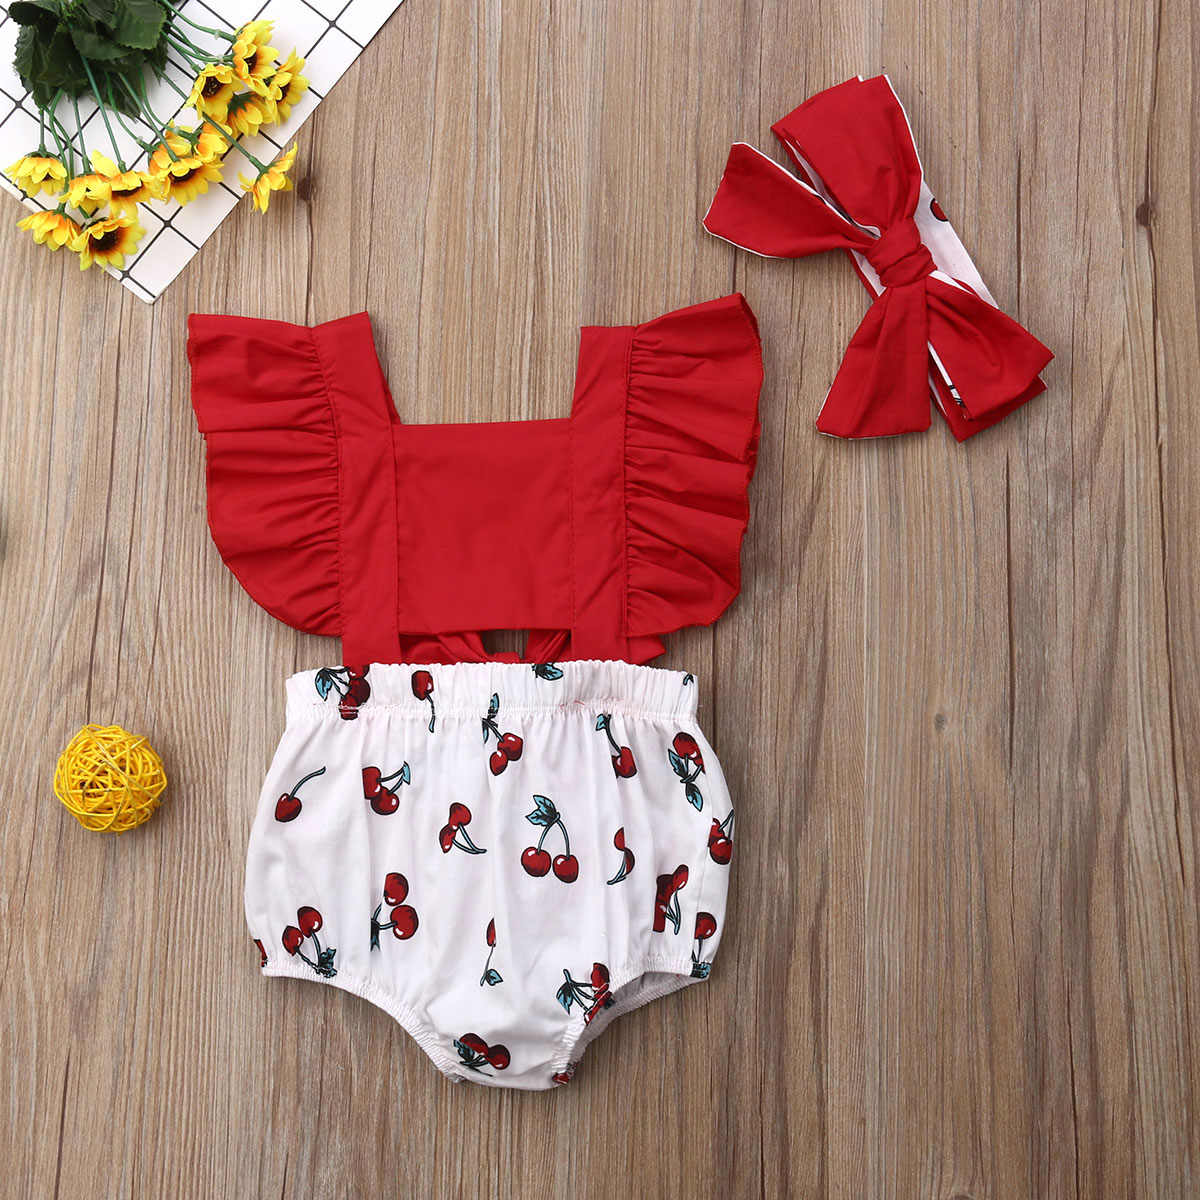 2pcs Newborn Baby Girl Ruffle Cherry Print Bodysuits Headband Sunsuit Outfits Summer Clothes